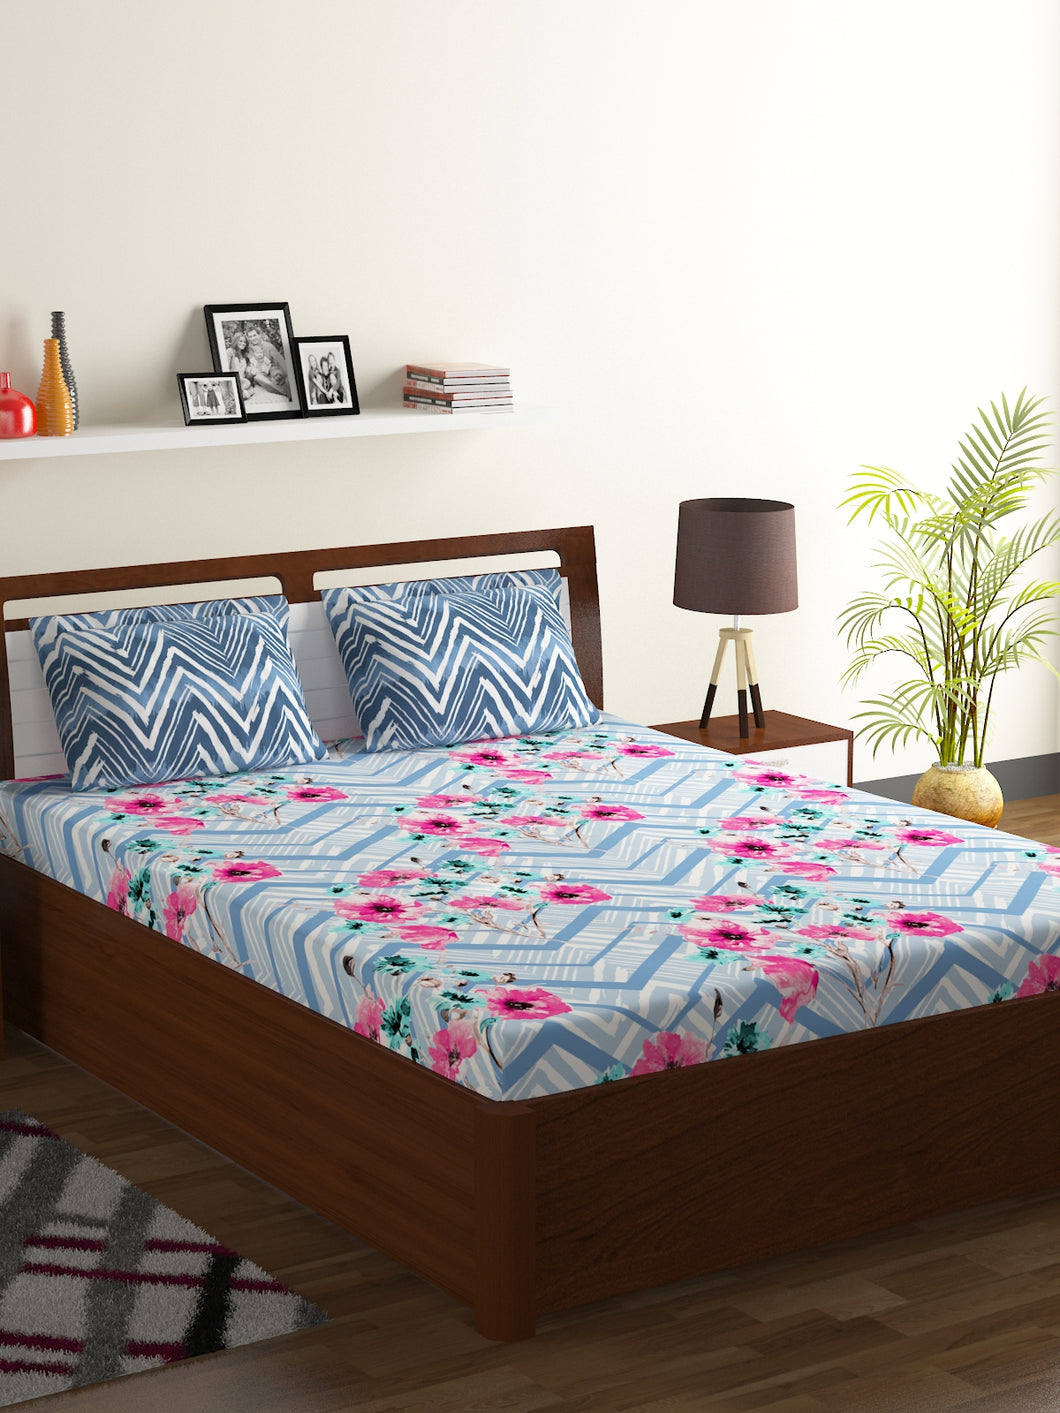 Bombay Dyeing Axia 104 TC Cotton Double Bedsheet with 2 Pillow Covers-Blue - SWHF